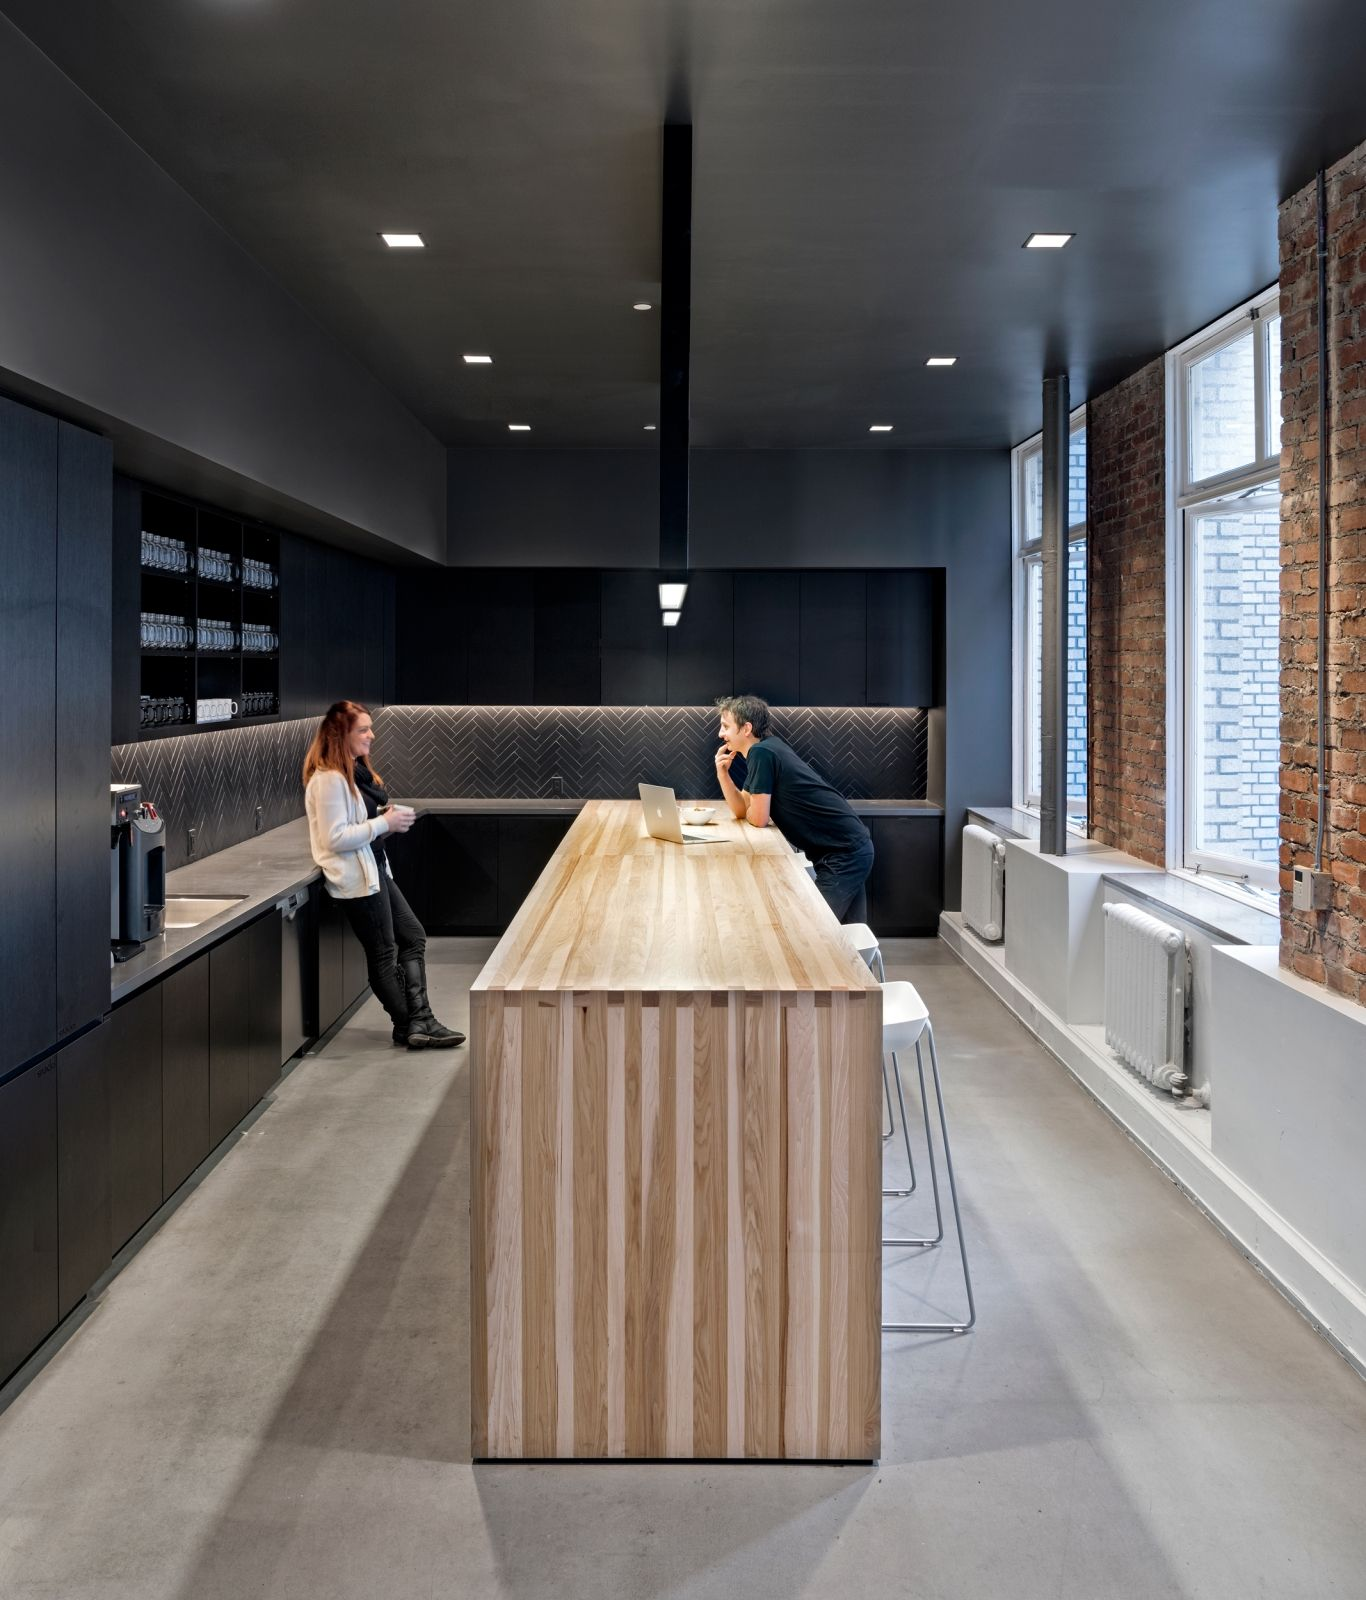 Studio O+A liveRamp kitchen | OFFICE SPACE | Pinterest | Küche ...